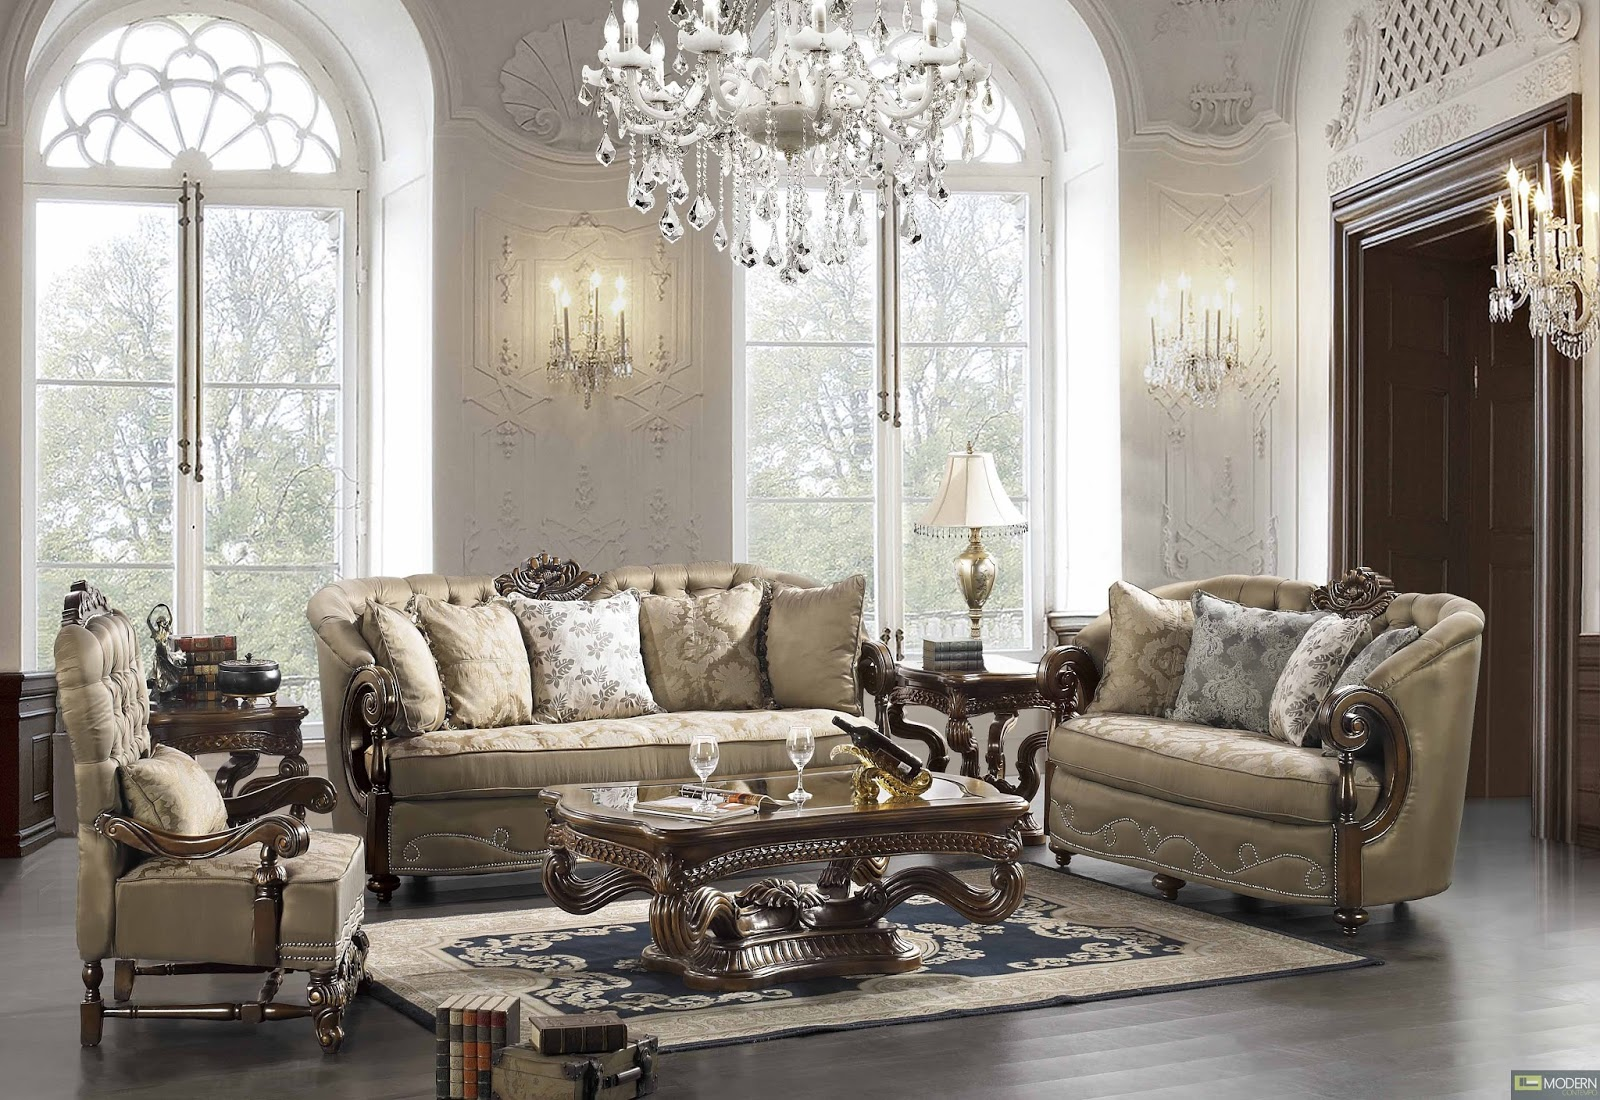 Best furniture ideas for home traditional classic for Classic living room furniture